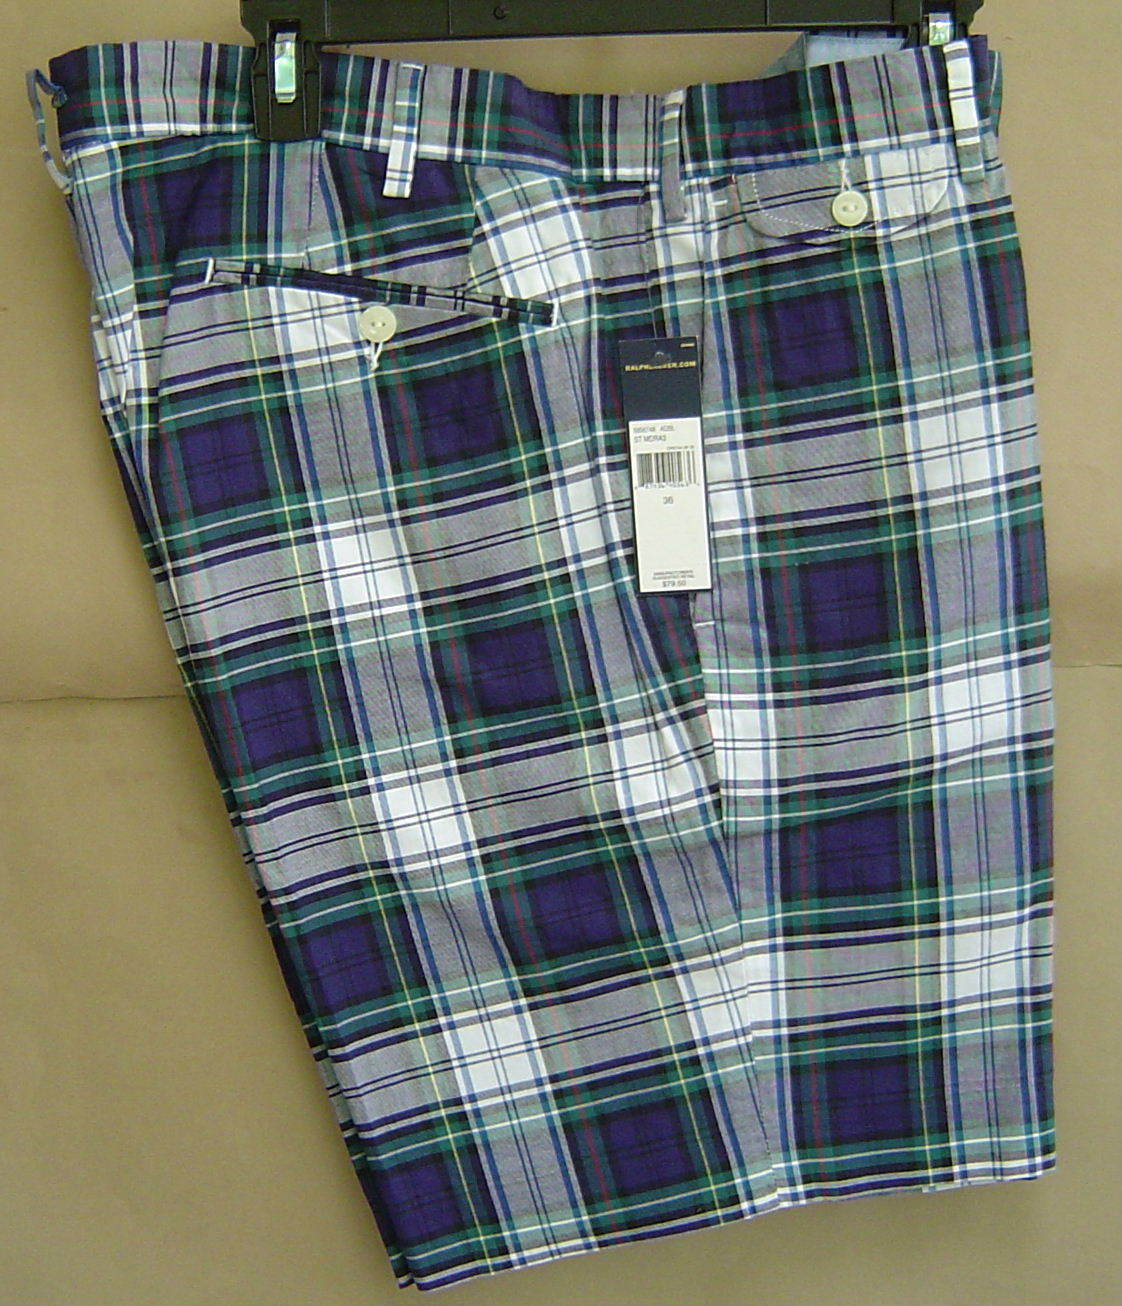 NWT  POLO RALPH LAUREN 36 Cotton MADRAS Shorts TARTAN Plaid SLIM GI 5856748